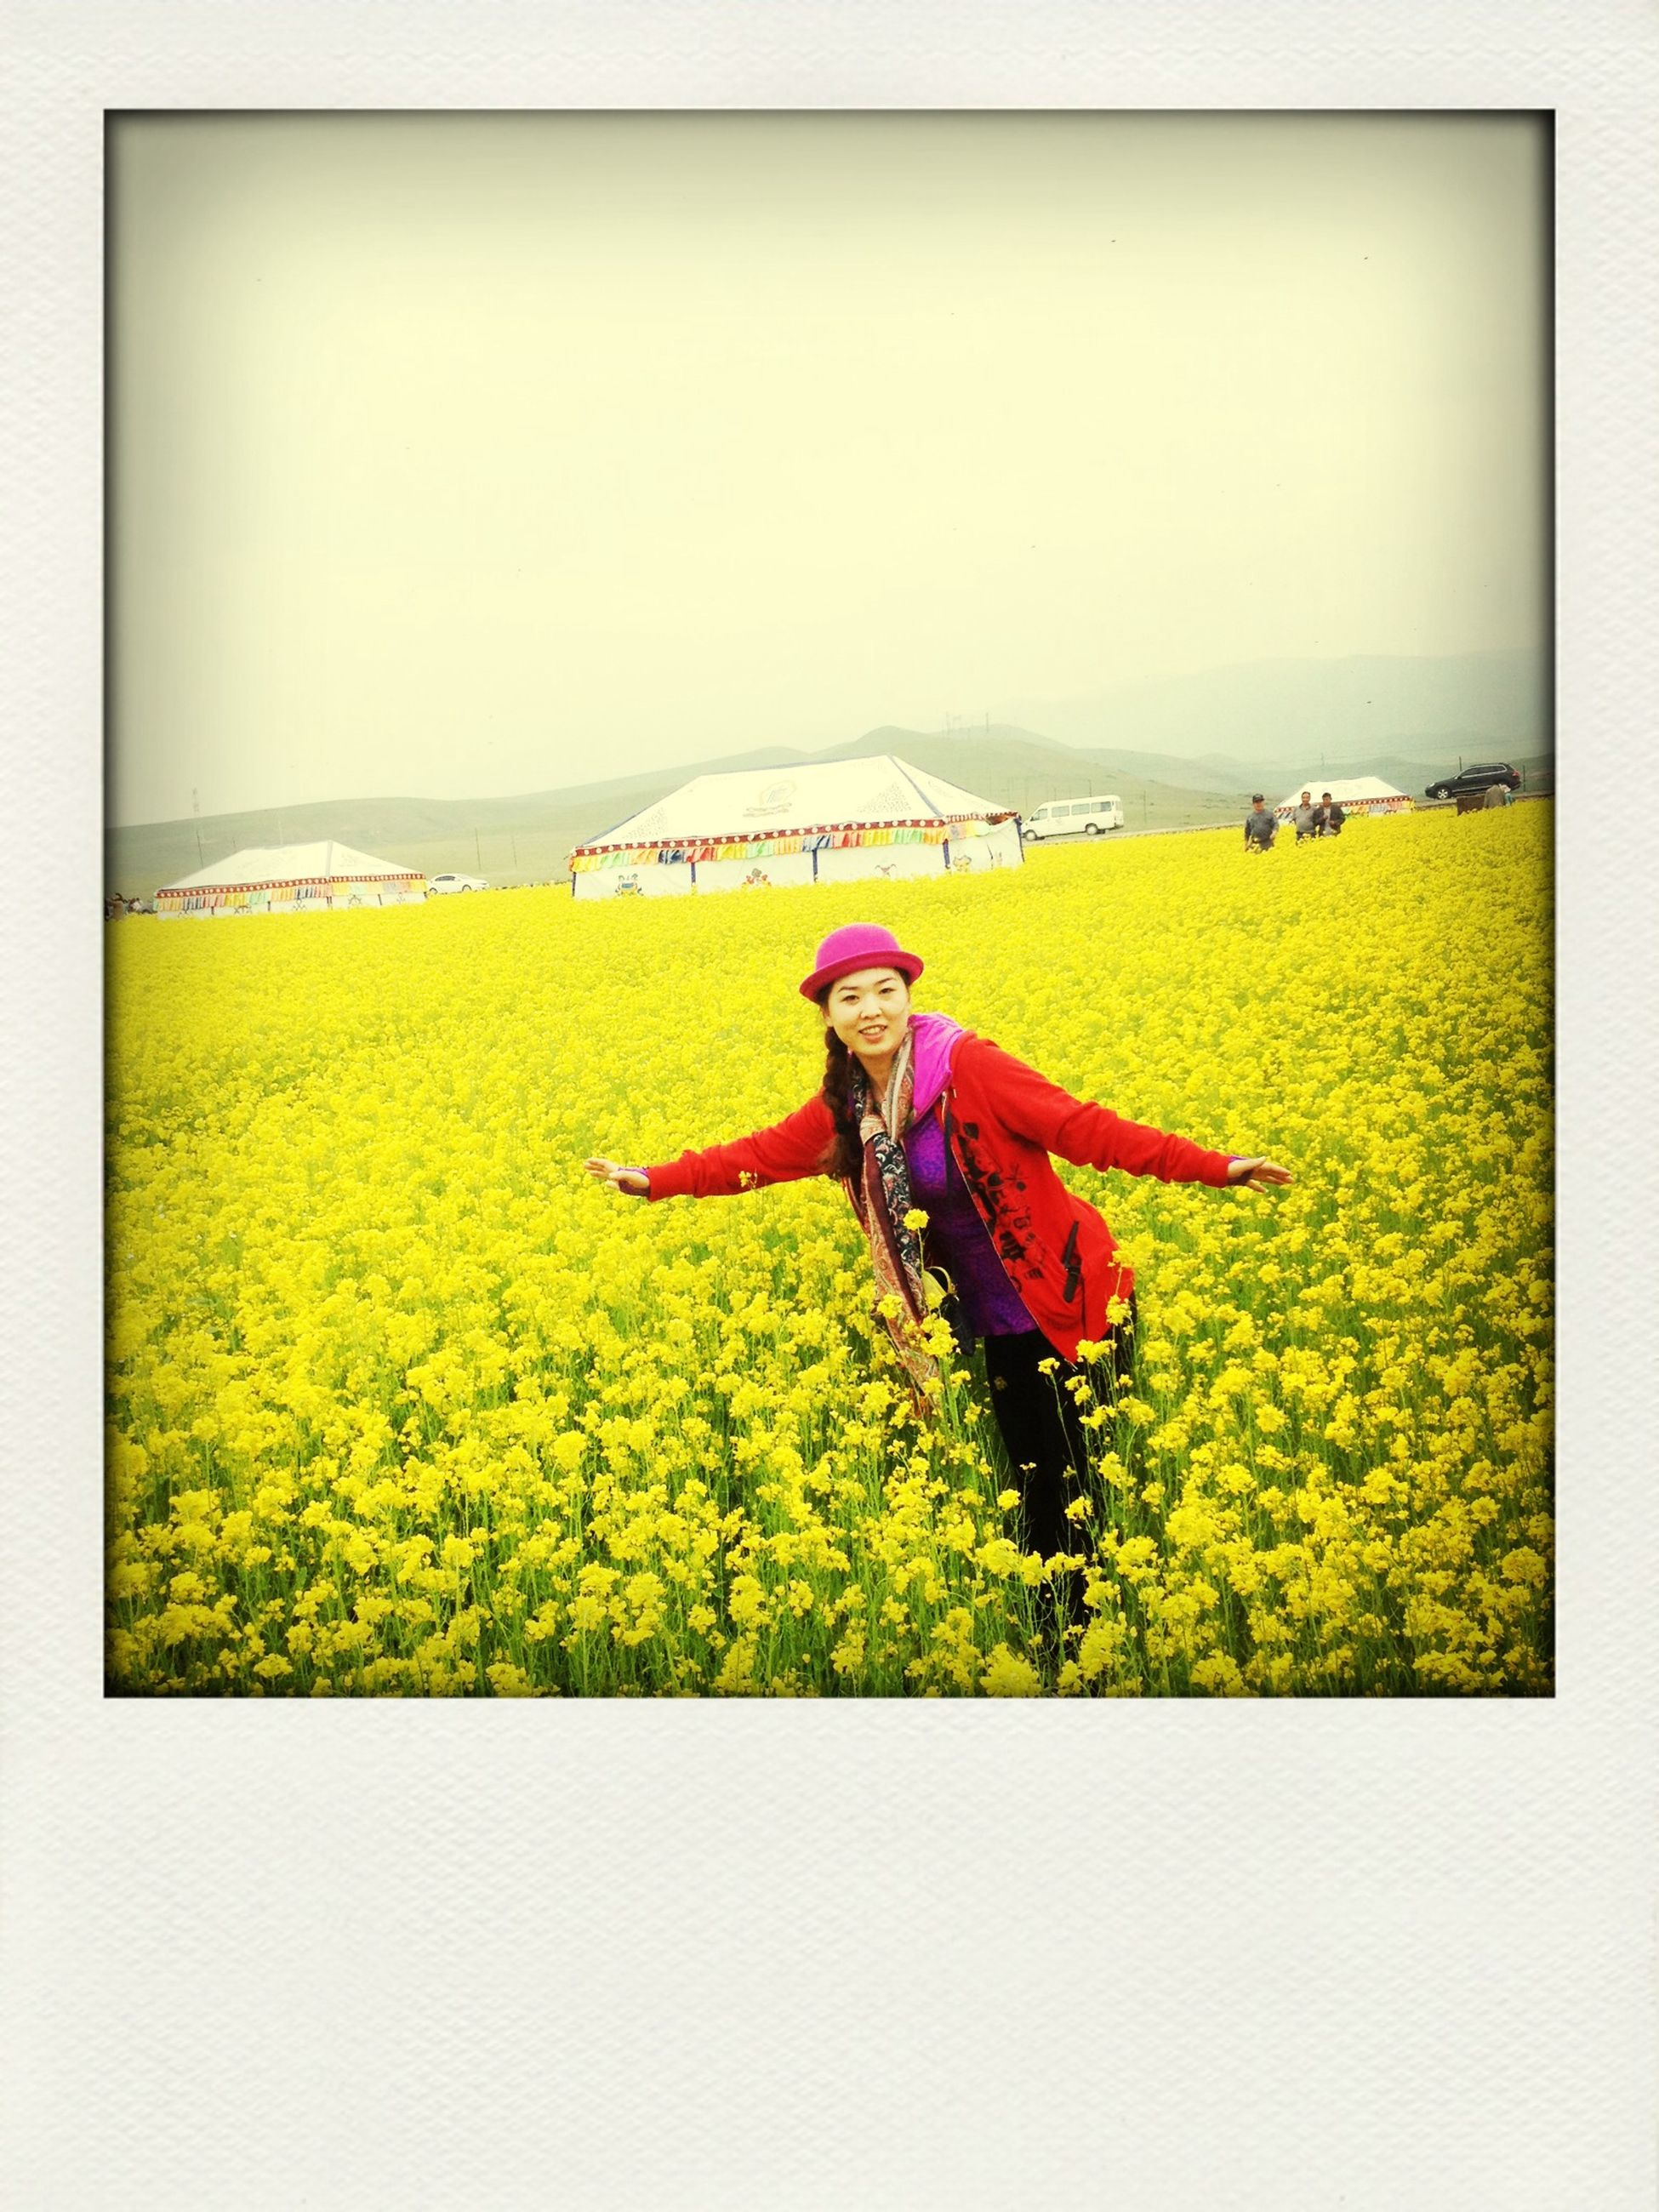 transfer print, auto post production filter, field, grass, childhood, lifestyles, leisure activity, yellow, green color, grassy, landscape, sport, sky, day, men, nature, casual clothing, full length